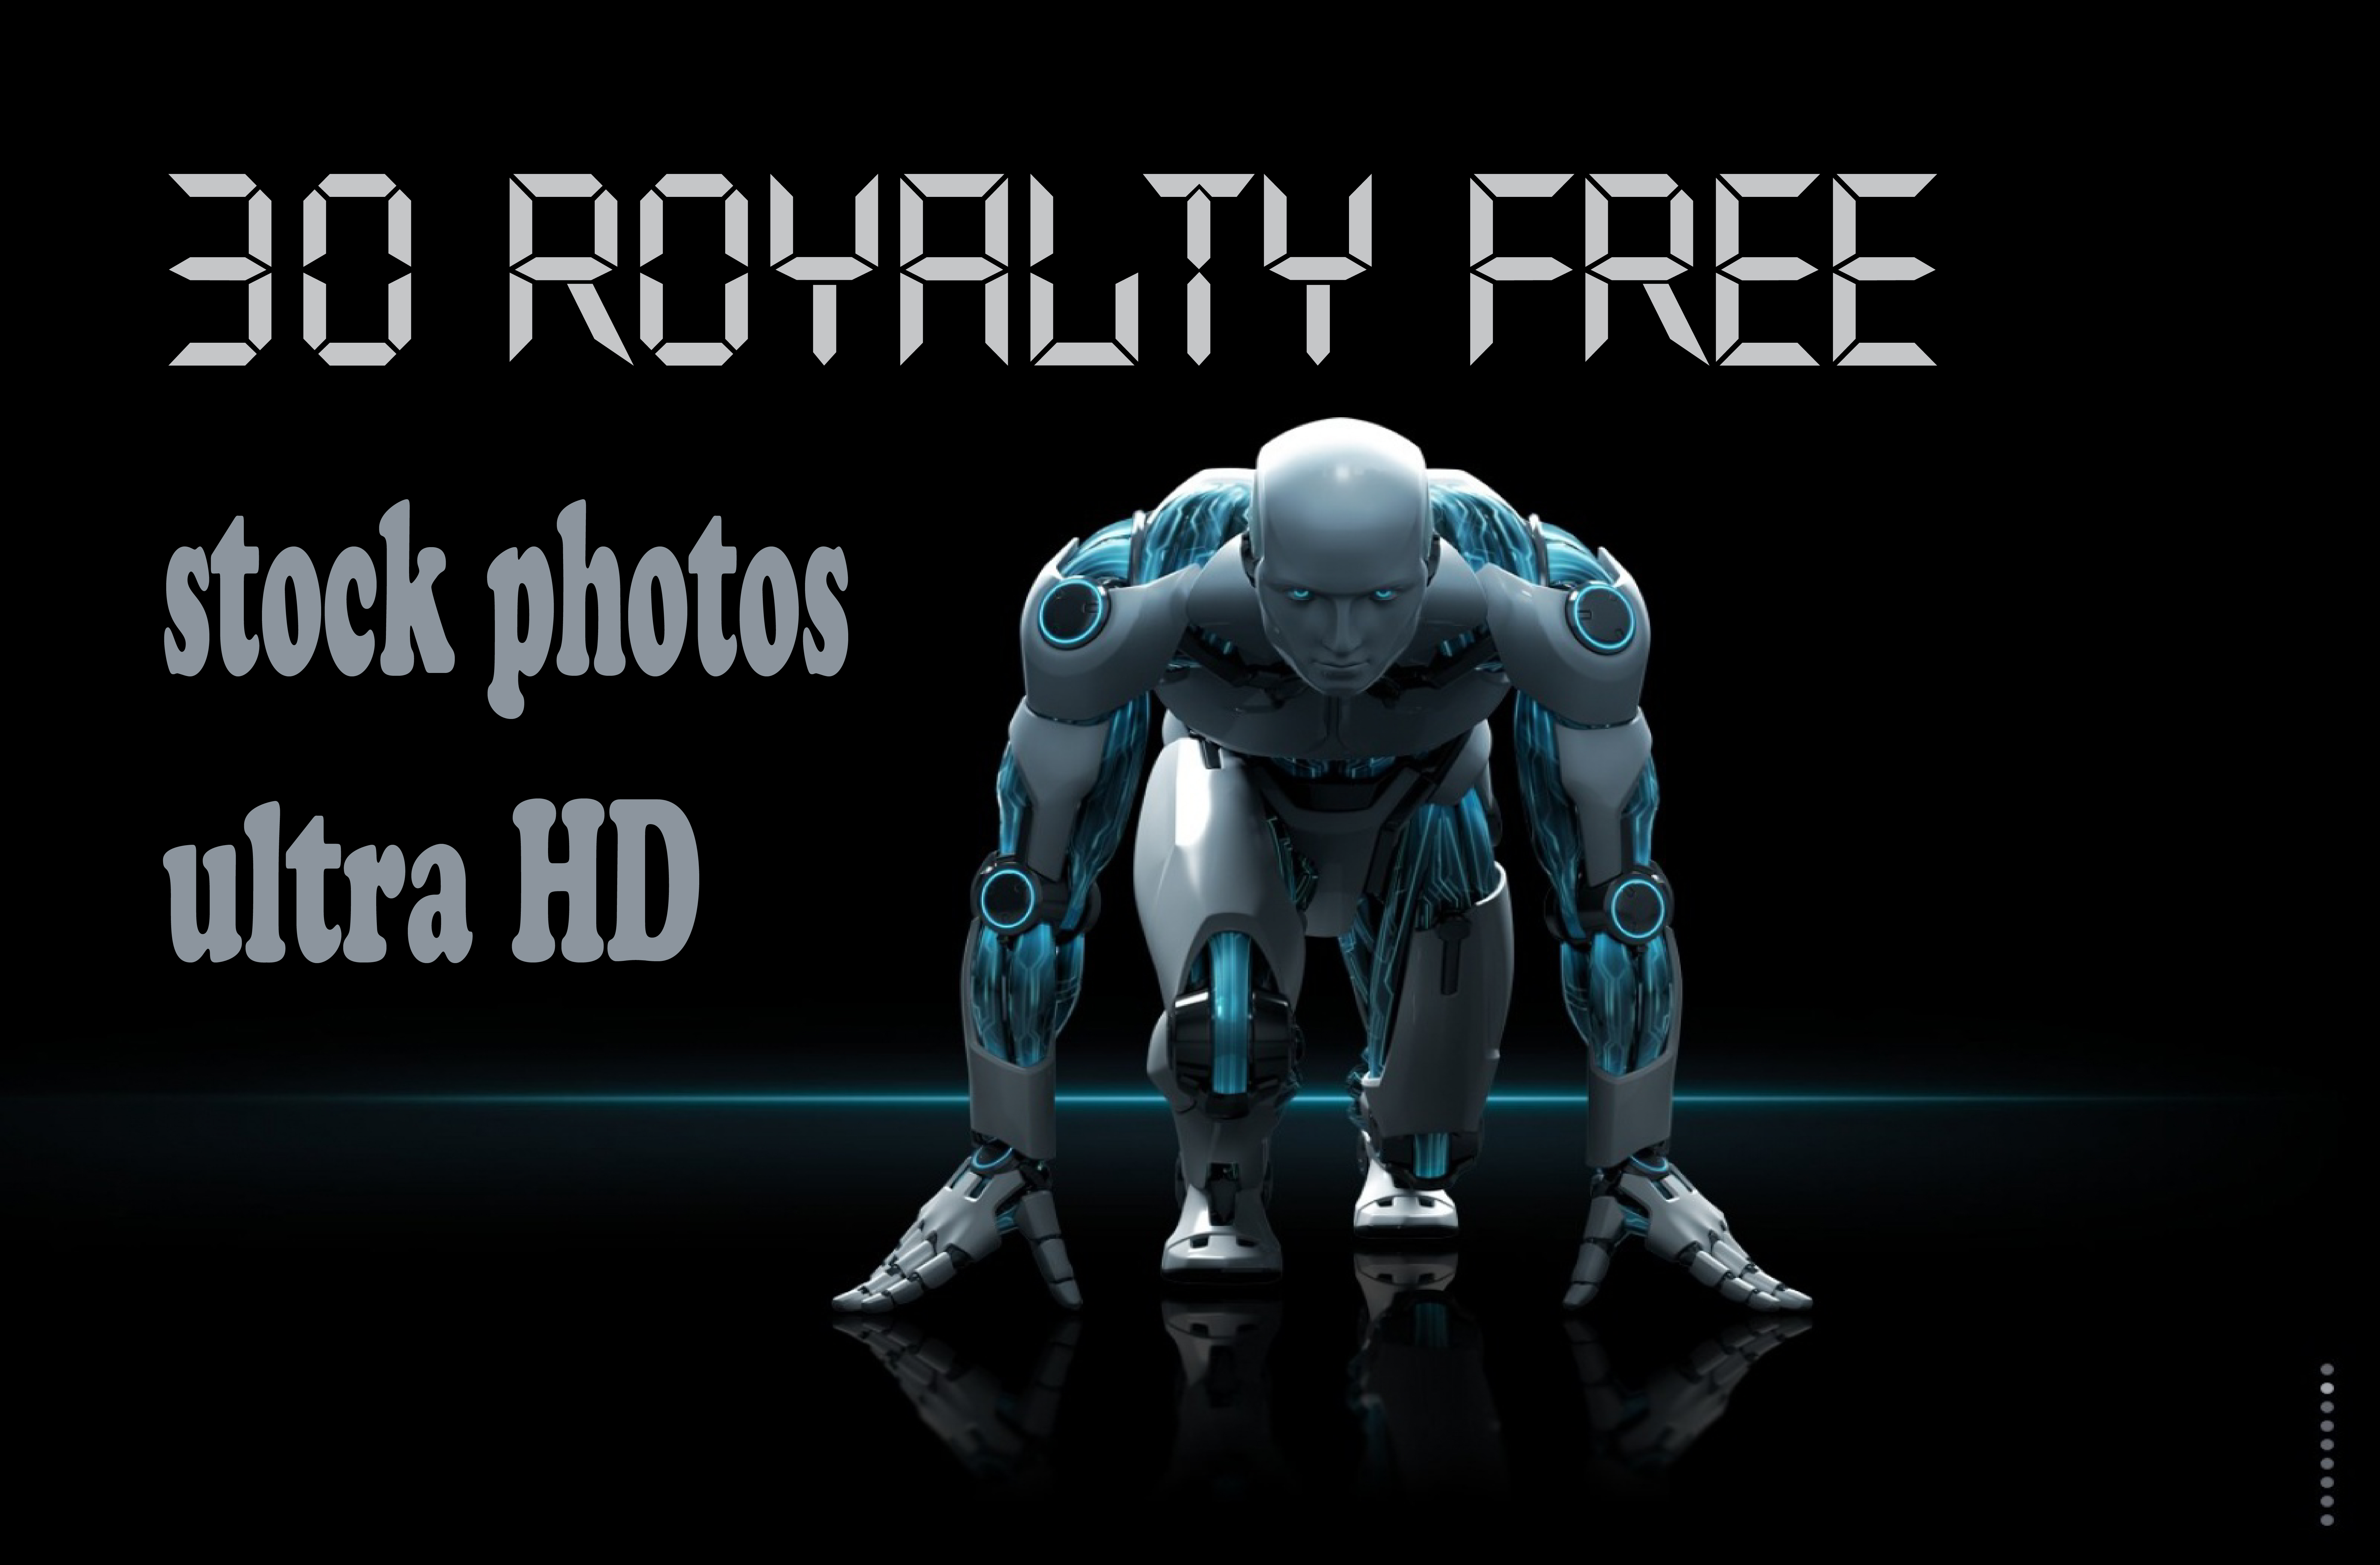 give 30 royalty free ultra HD stock images on any subject